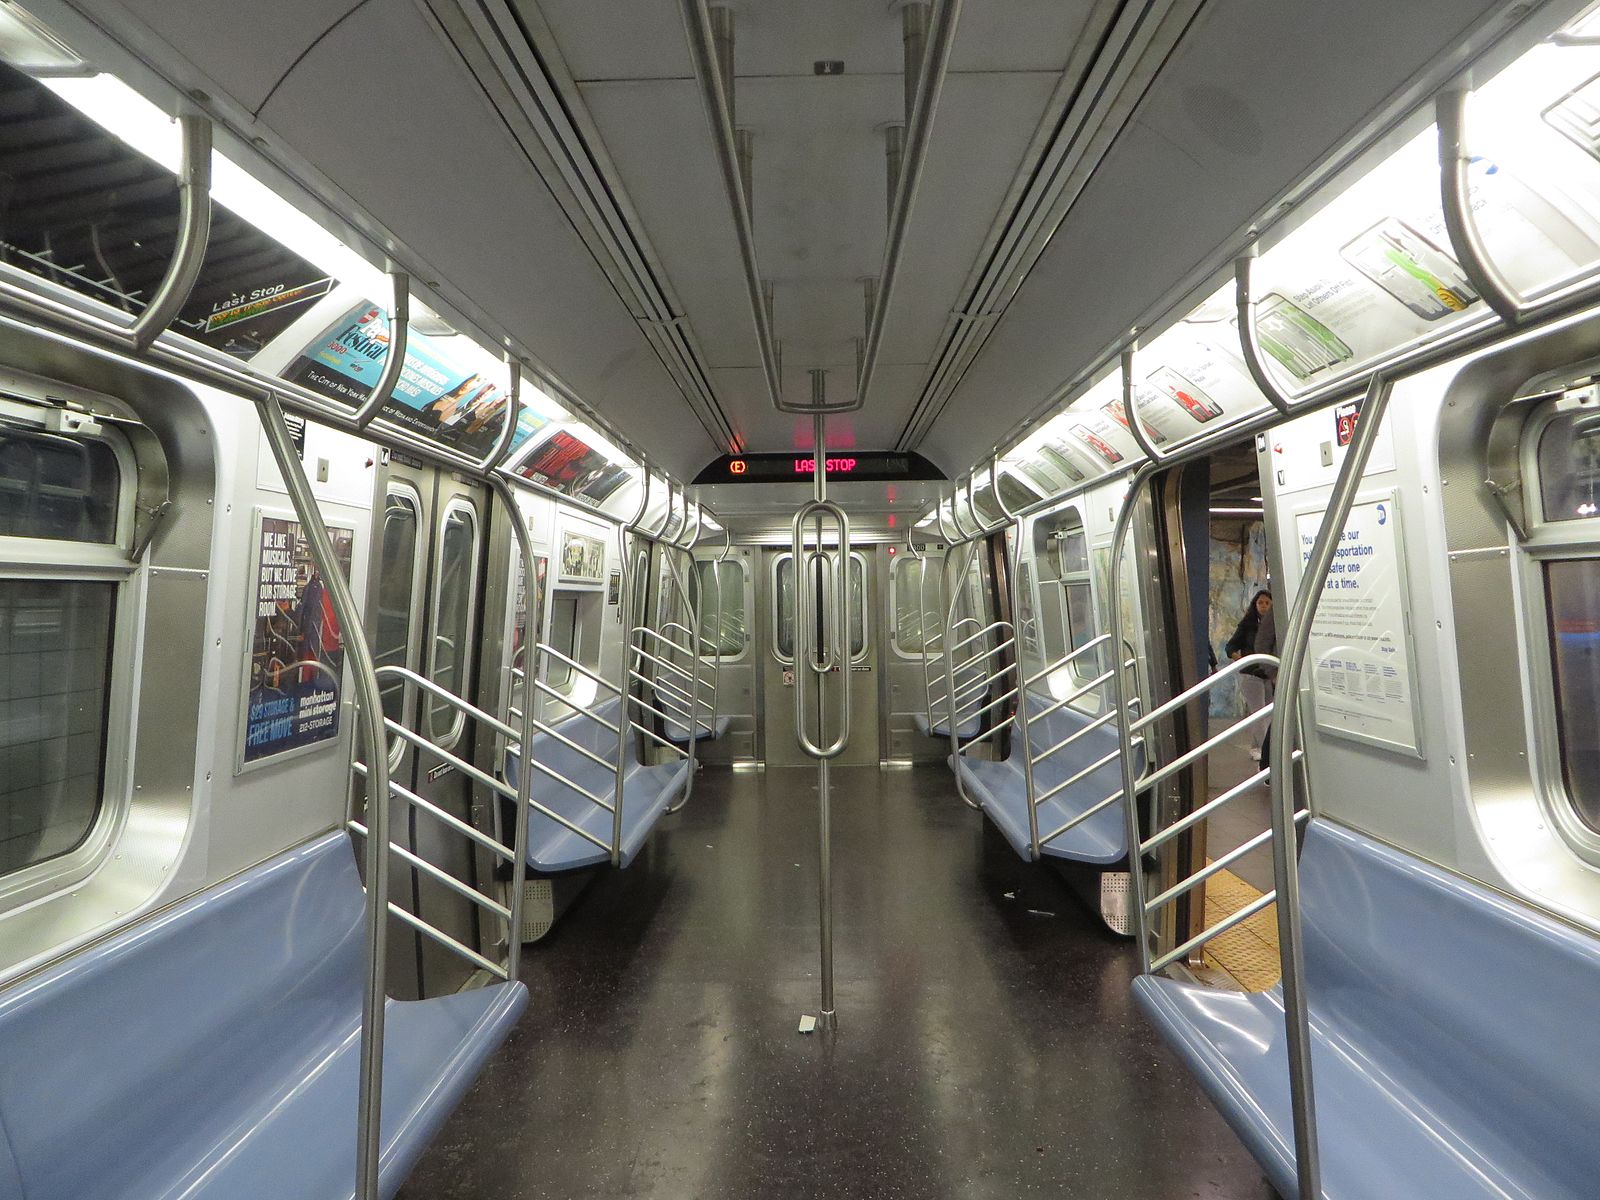 NYC Subway Interior